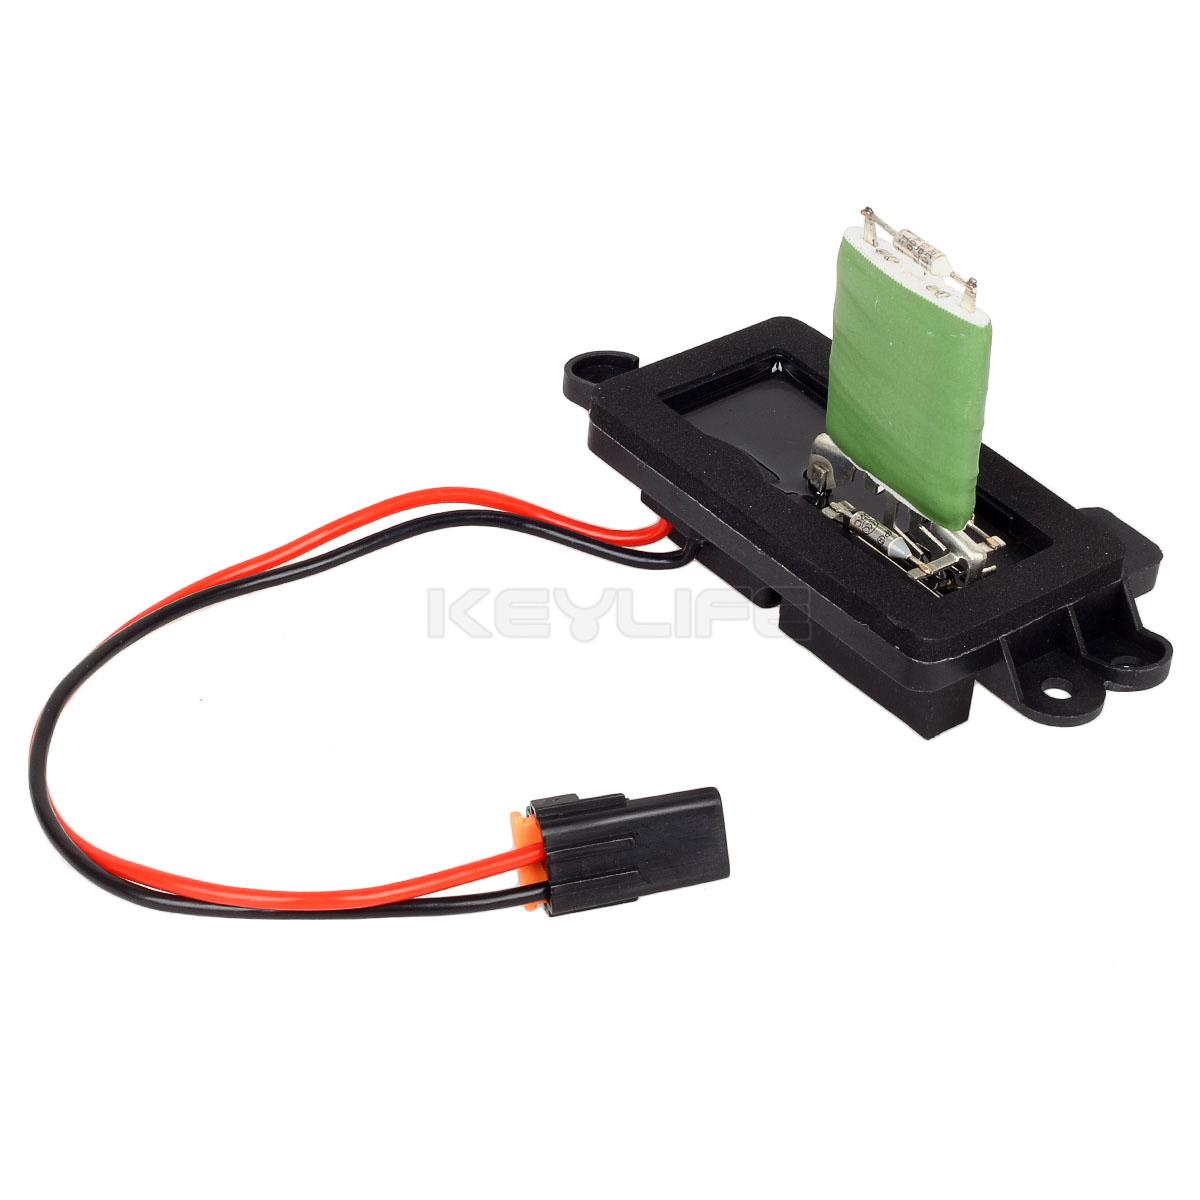 hight resolution of hvac blower motor resistor w wire harness for